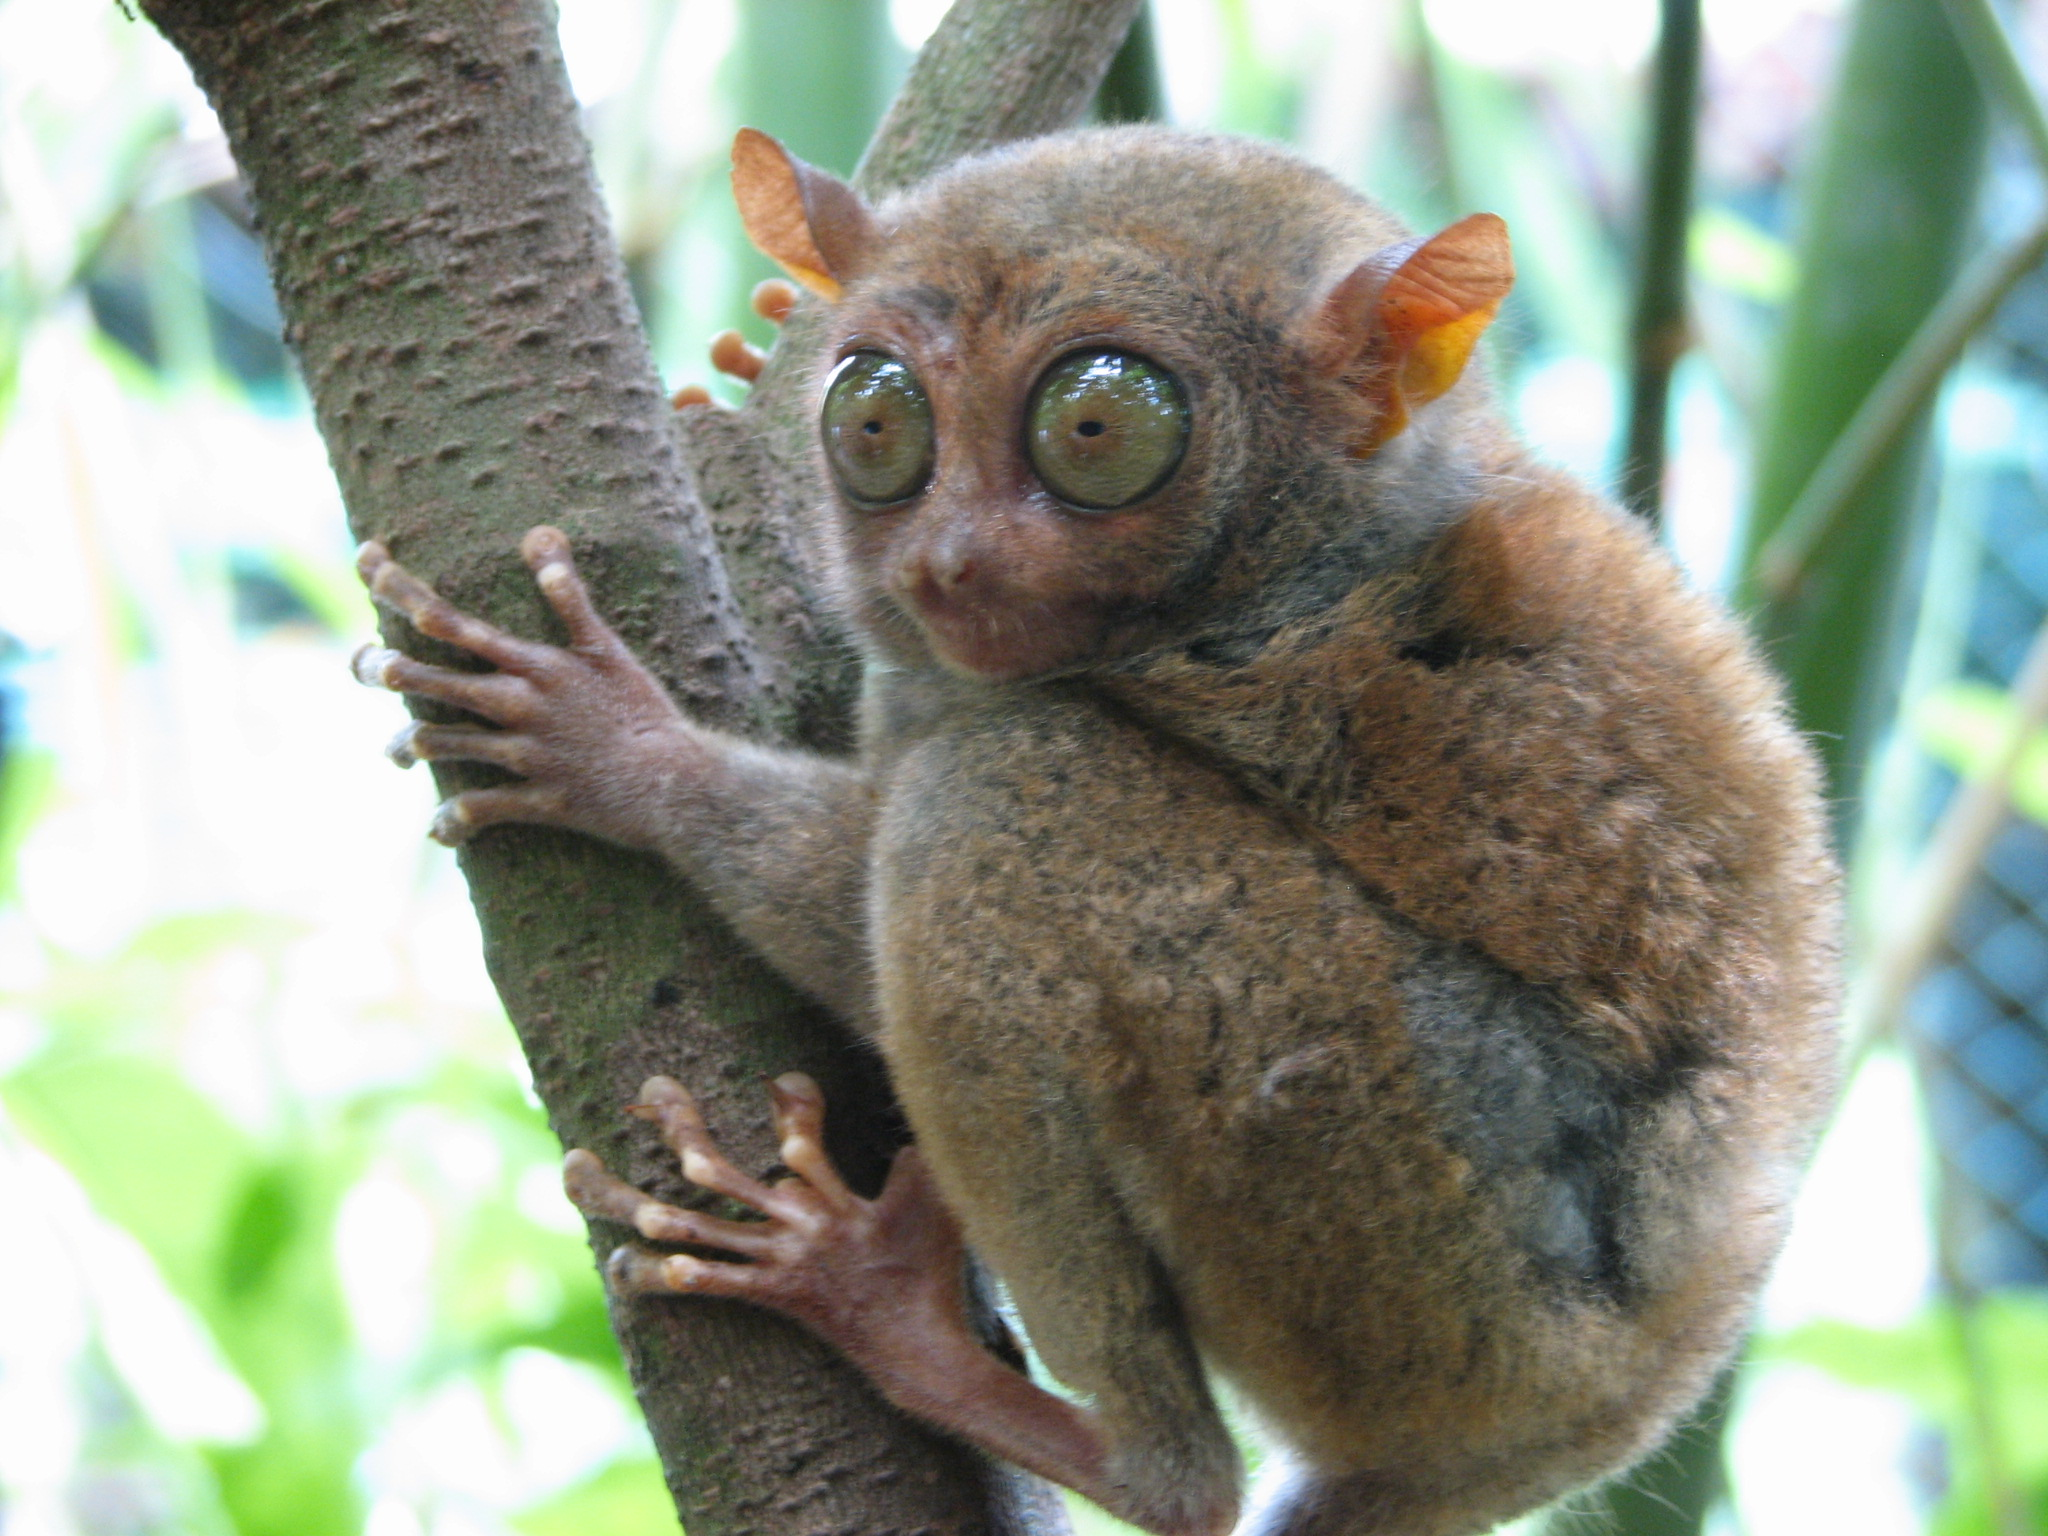 Image depicts a Tarsier in a tree.